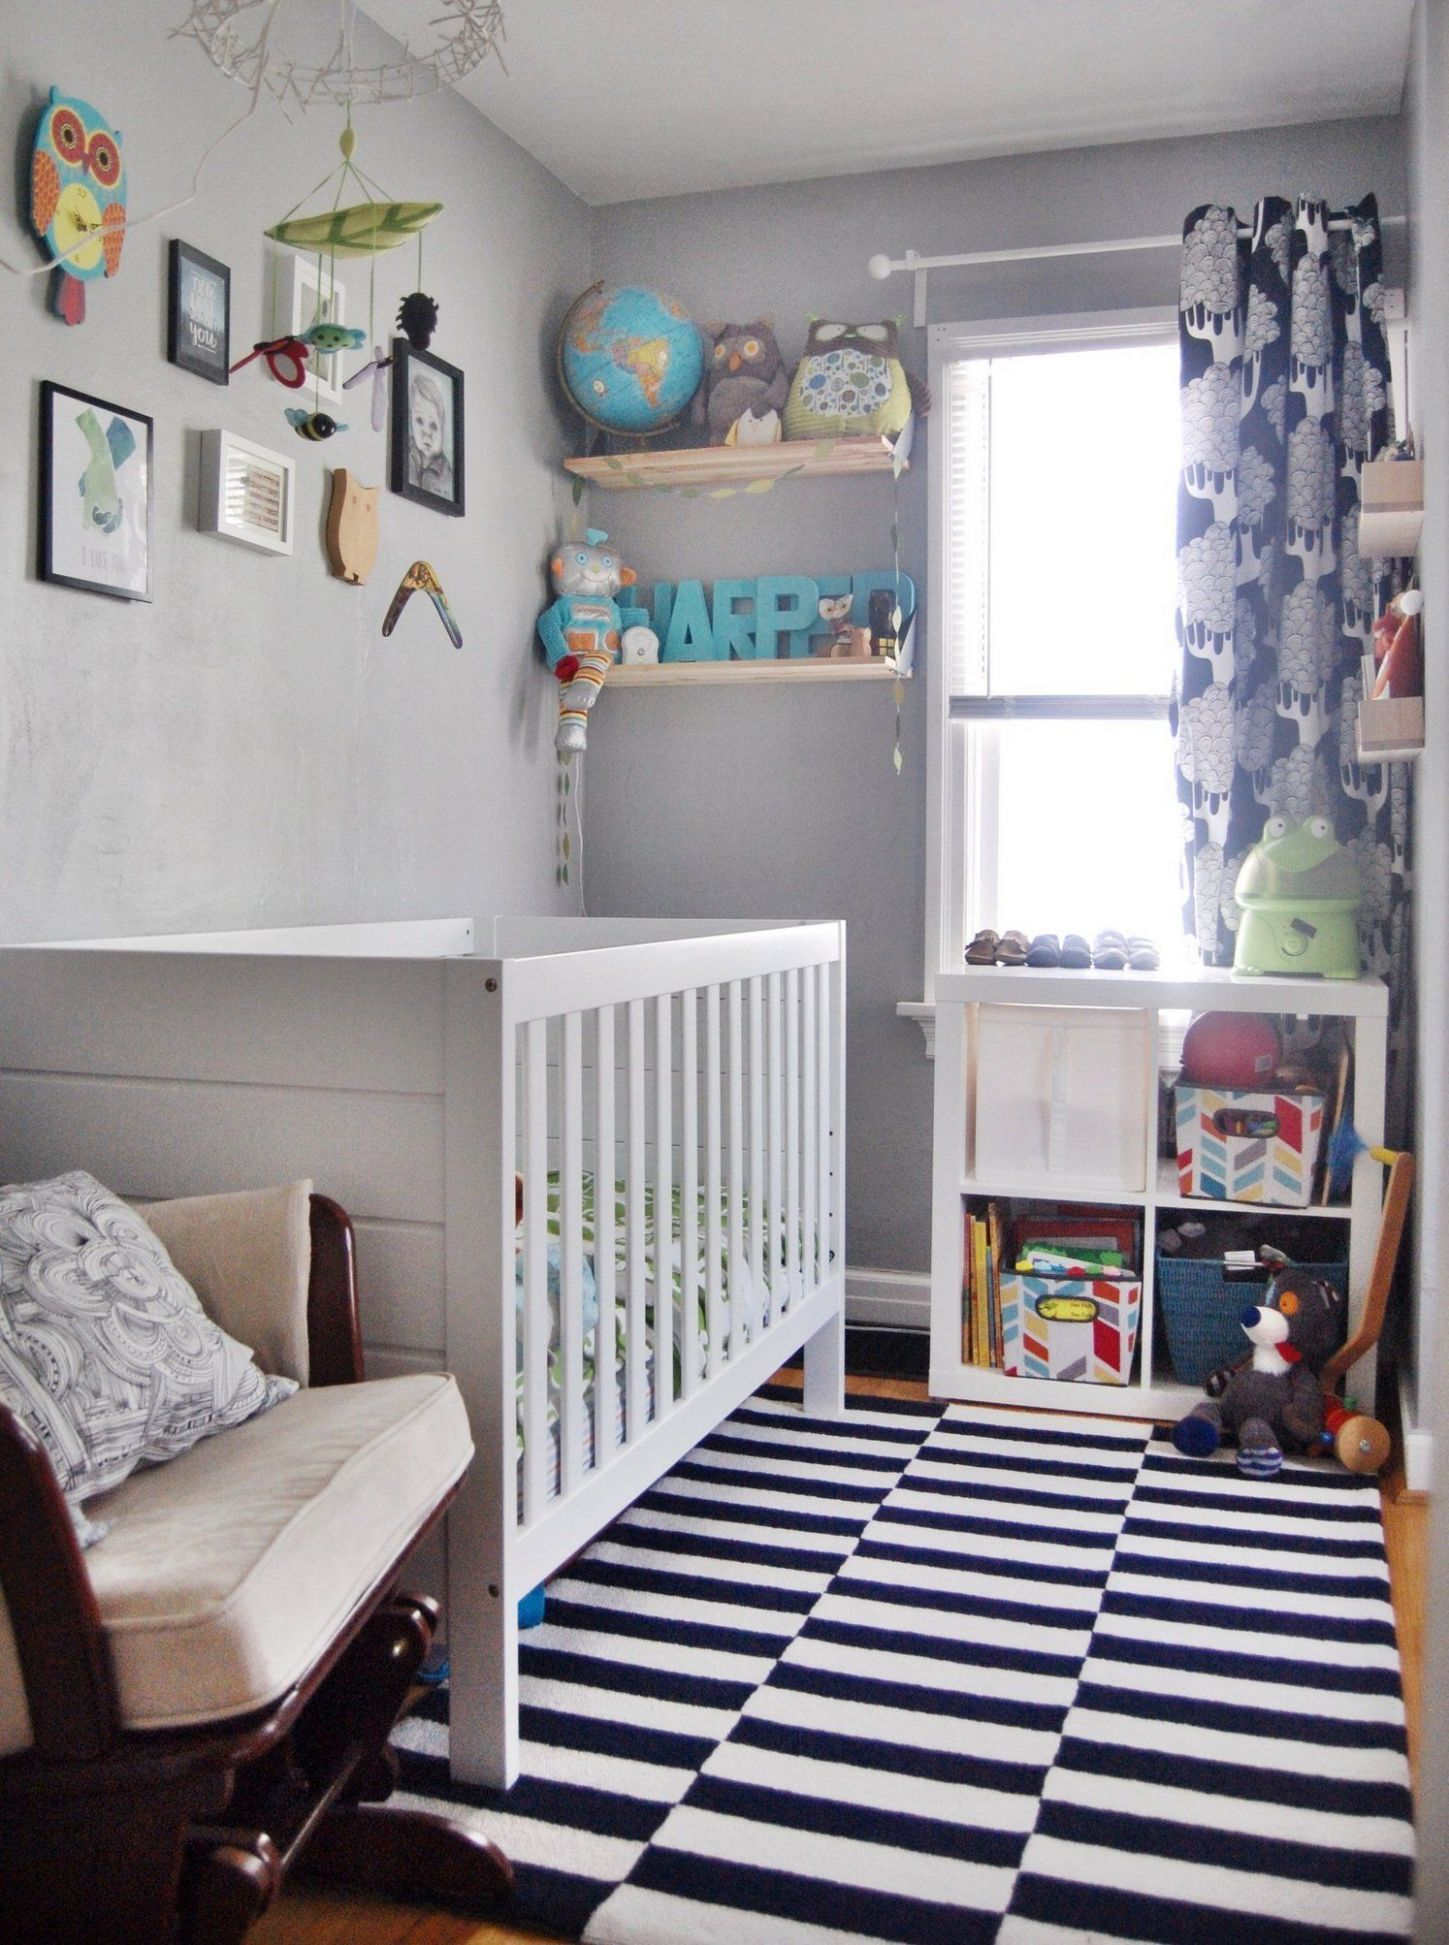 Bedroom : Small Baby Room Decor Ideas Inspiring Small Baby Room ..